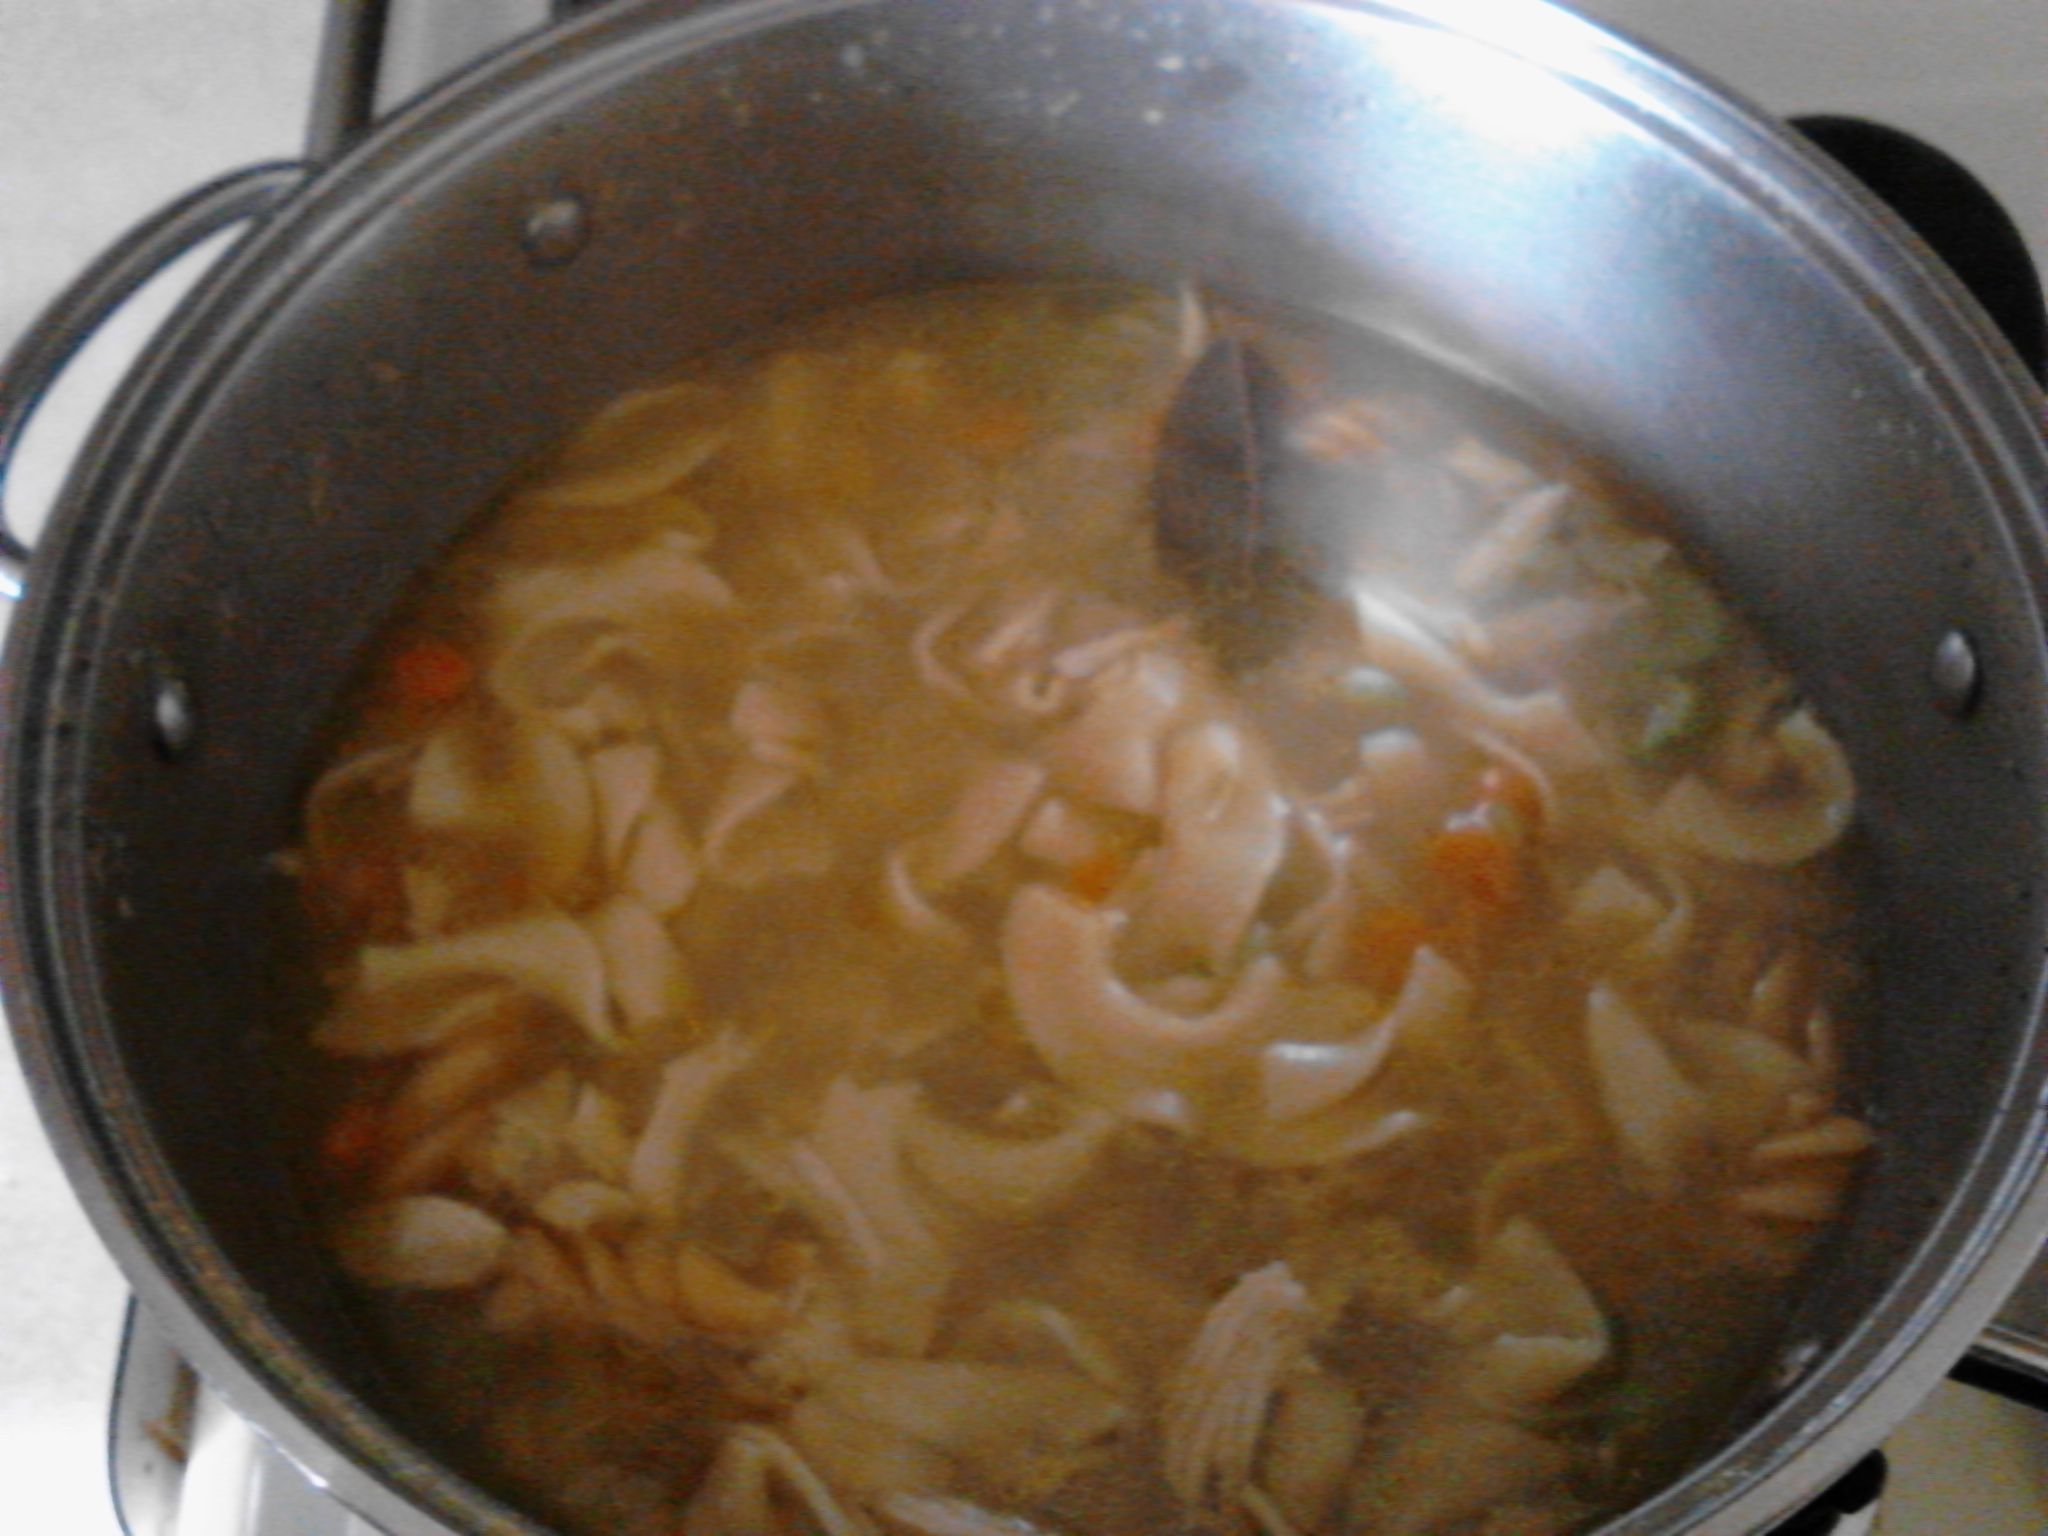 Homemade chicken noodle soup recipe from tyler florence httpwww homemade chicken noodle soup recipe from tyler florence http forumfinder Images